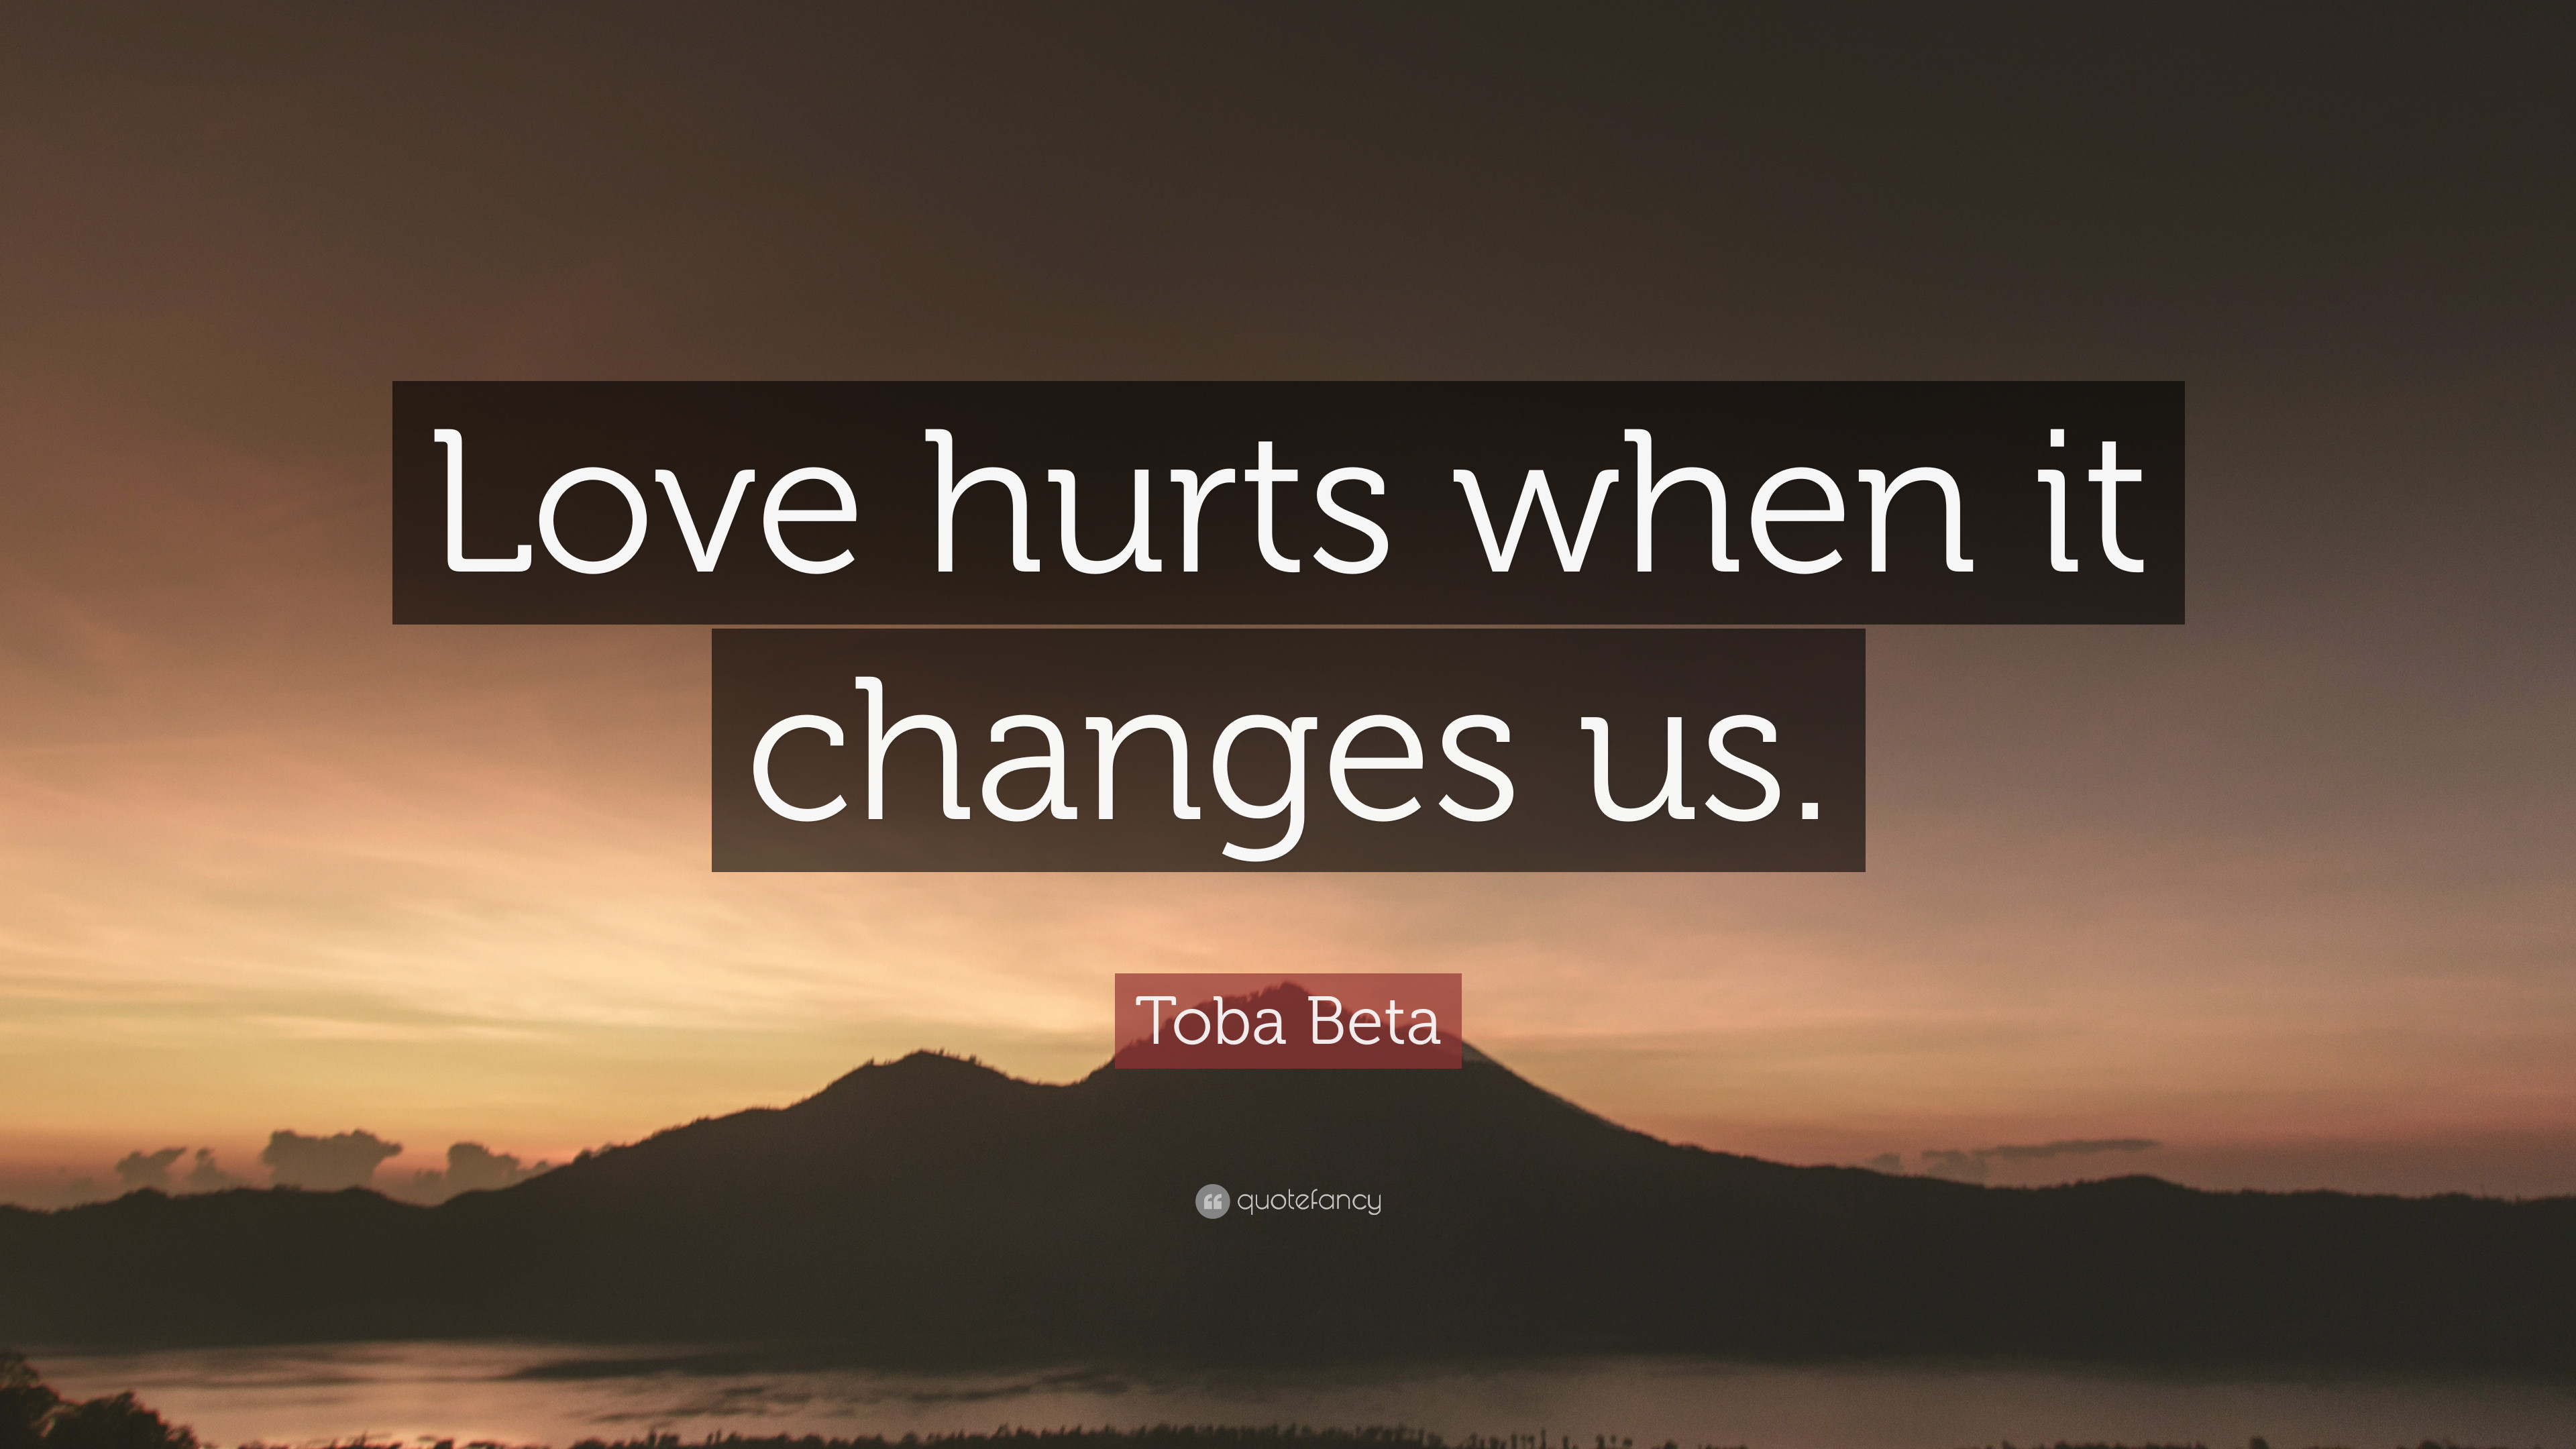 Can You Get Moving Wallpapers For Iphone X Love Hurts Wallpapers With Quotes 68 Images